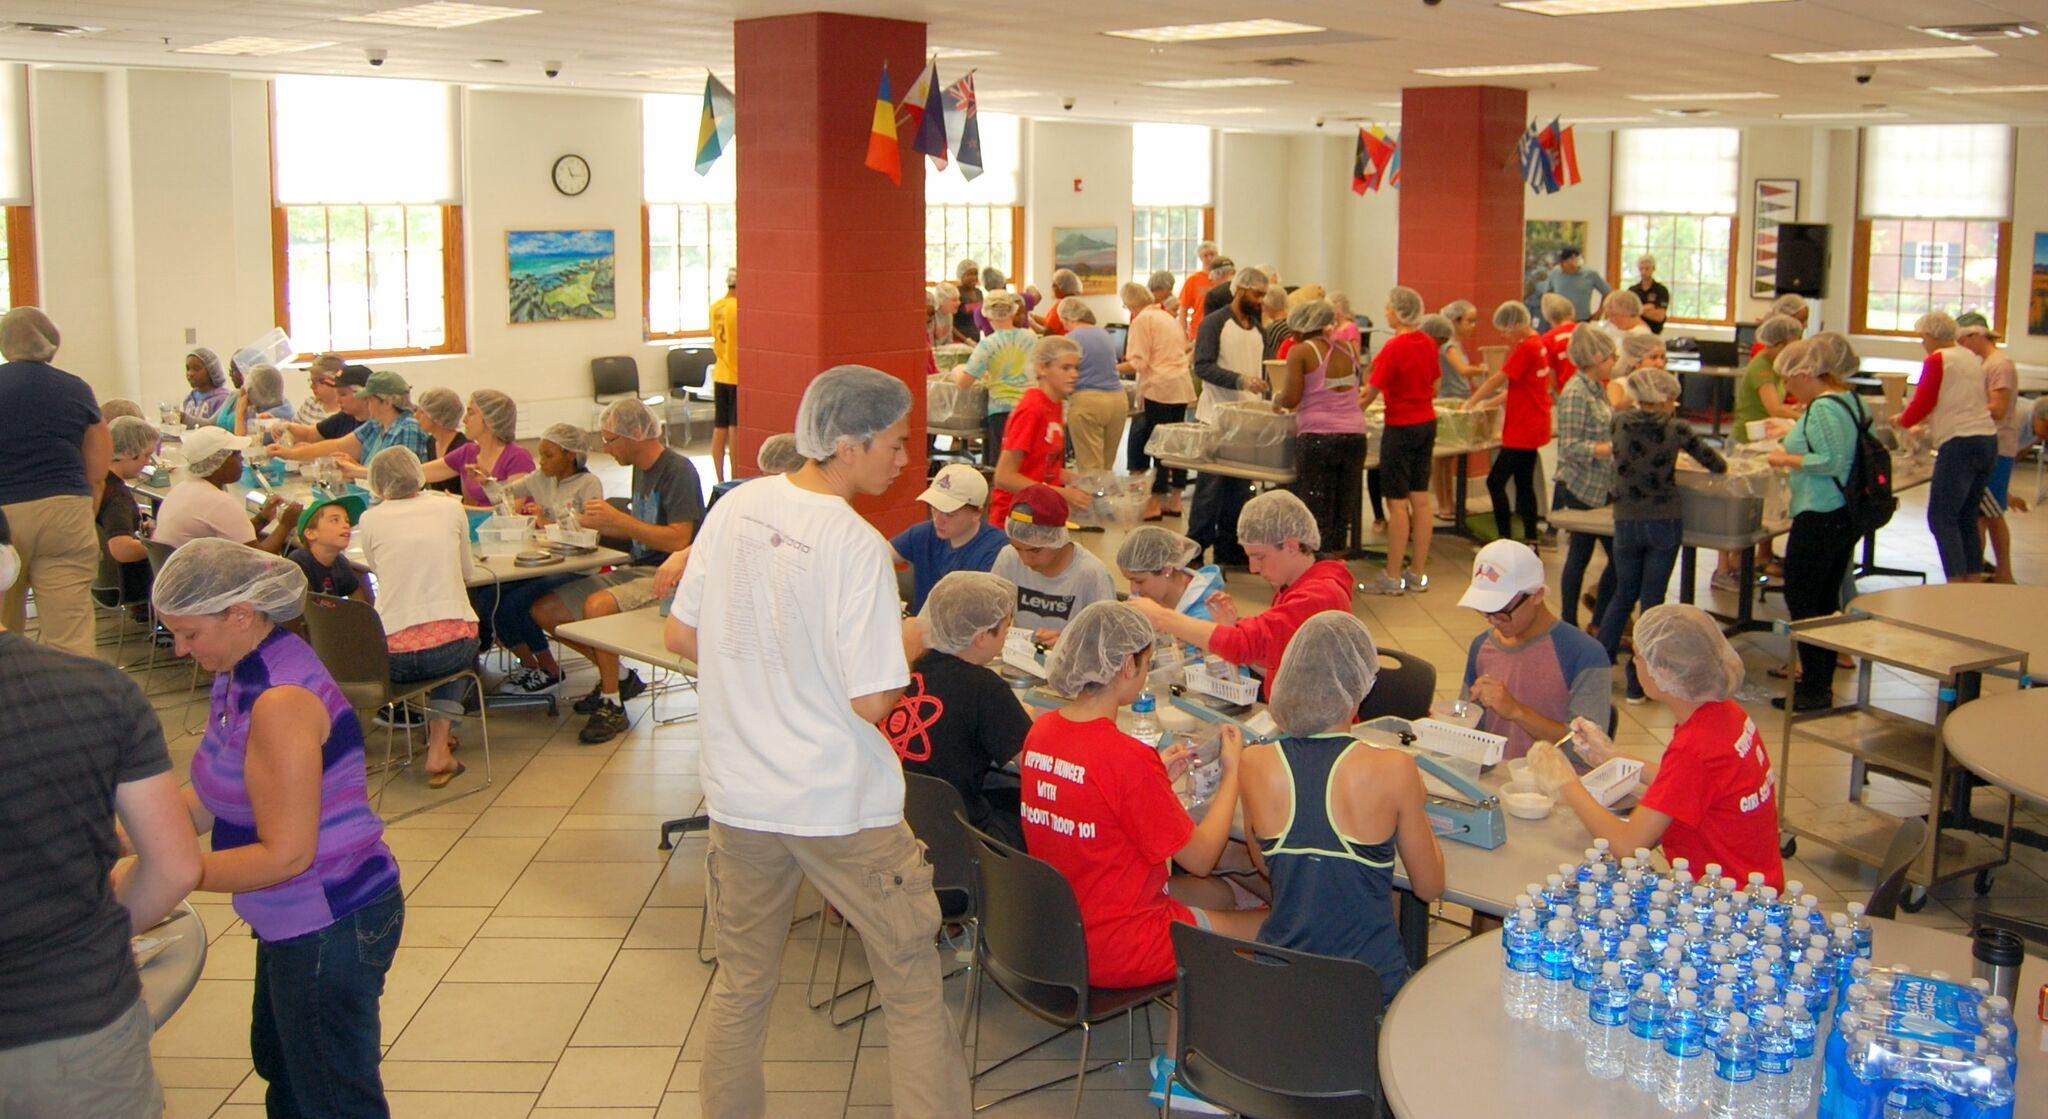 Volunteers packing the meals for Stop Hunger Now in the high school's lower cafeteria.